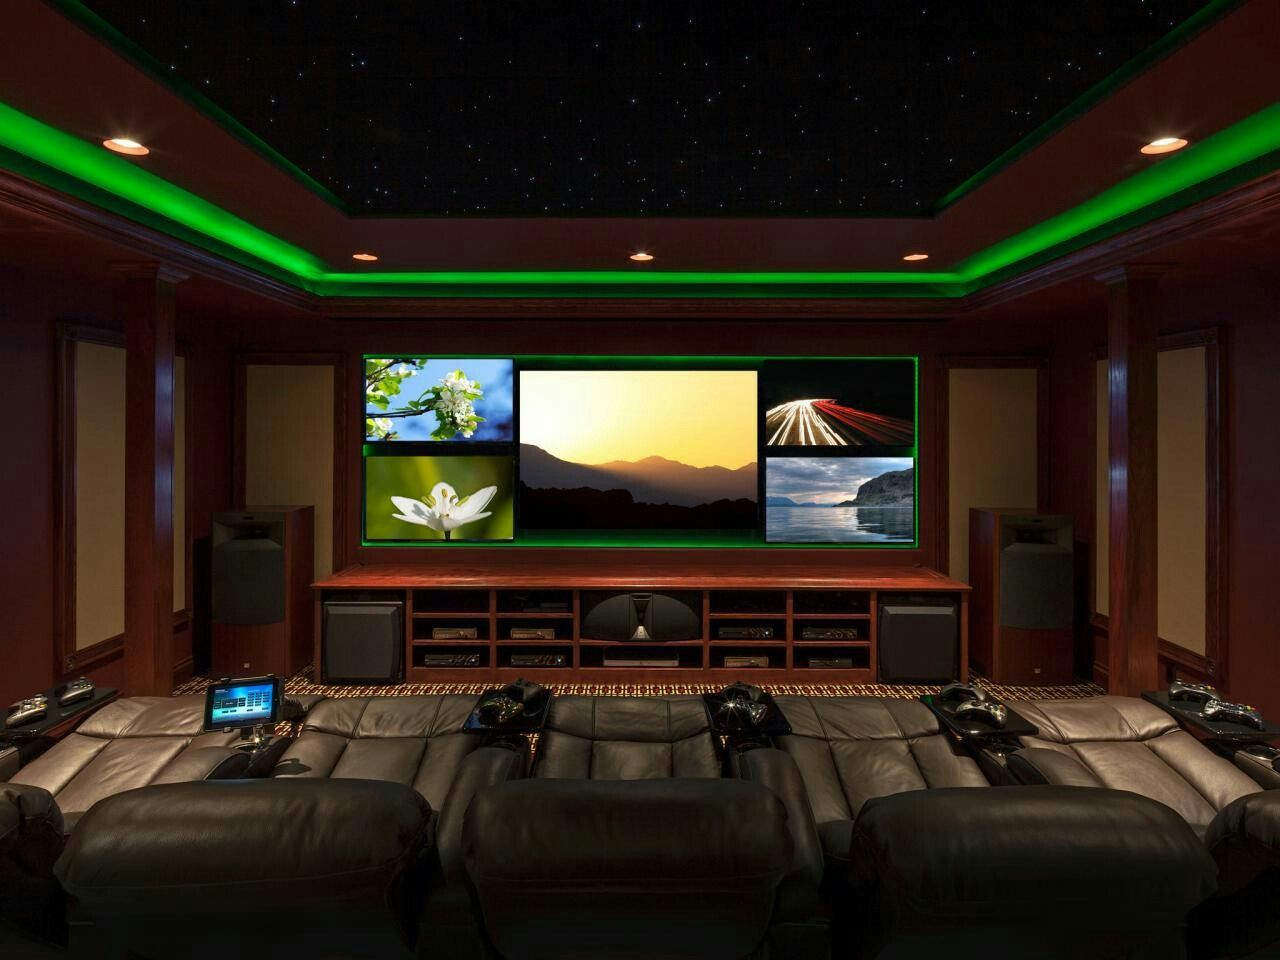 Idea By Hasan Tekeli On Game Rooms Video Game Room Design Game